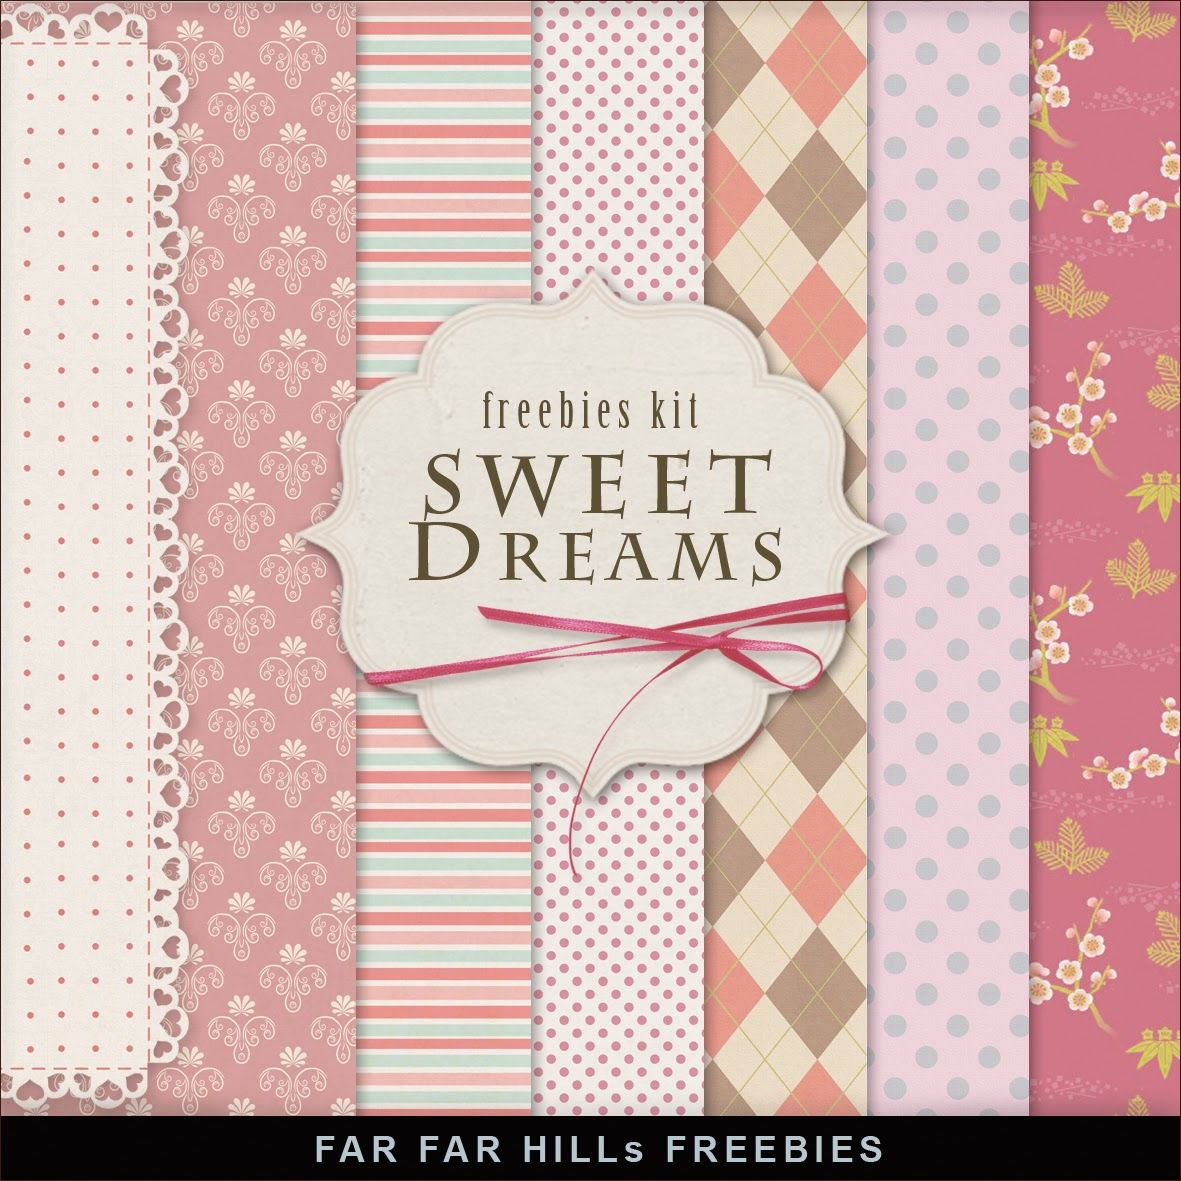 Freebies Kit - Sweet Dreams